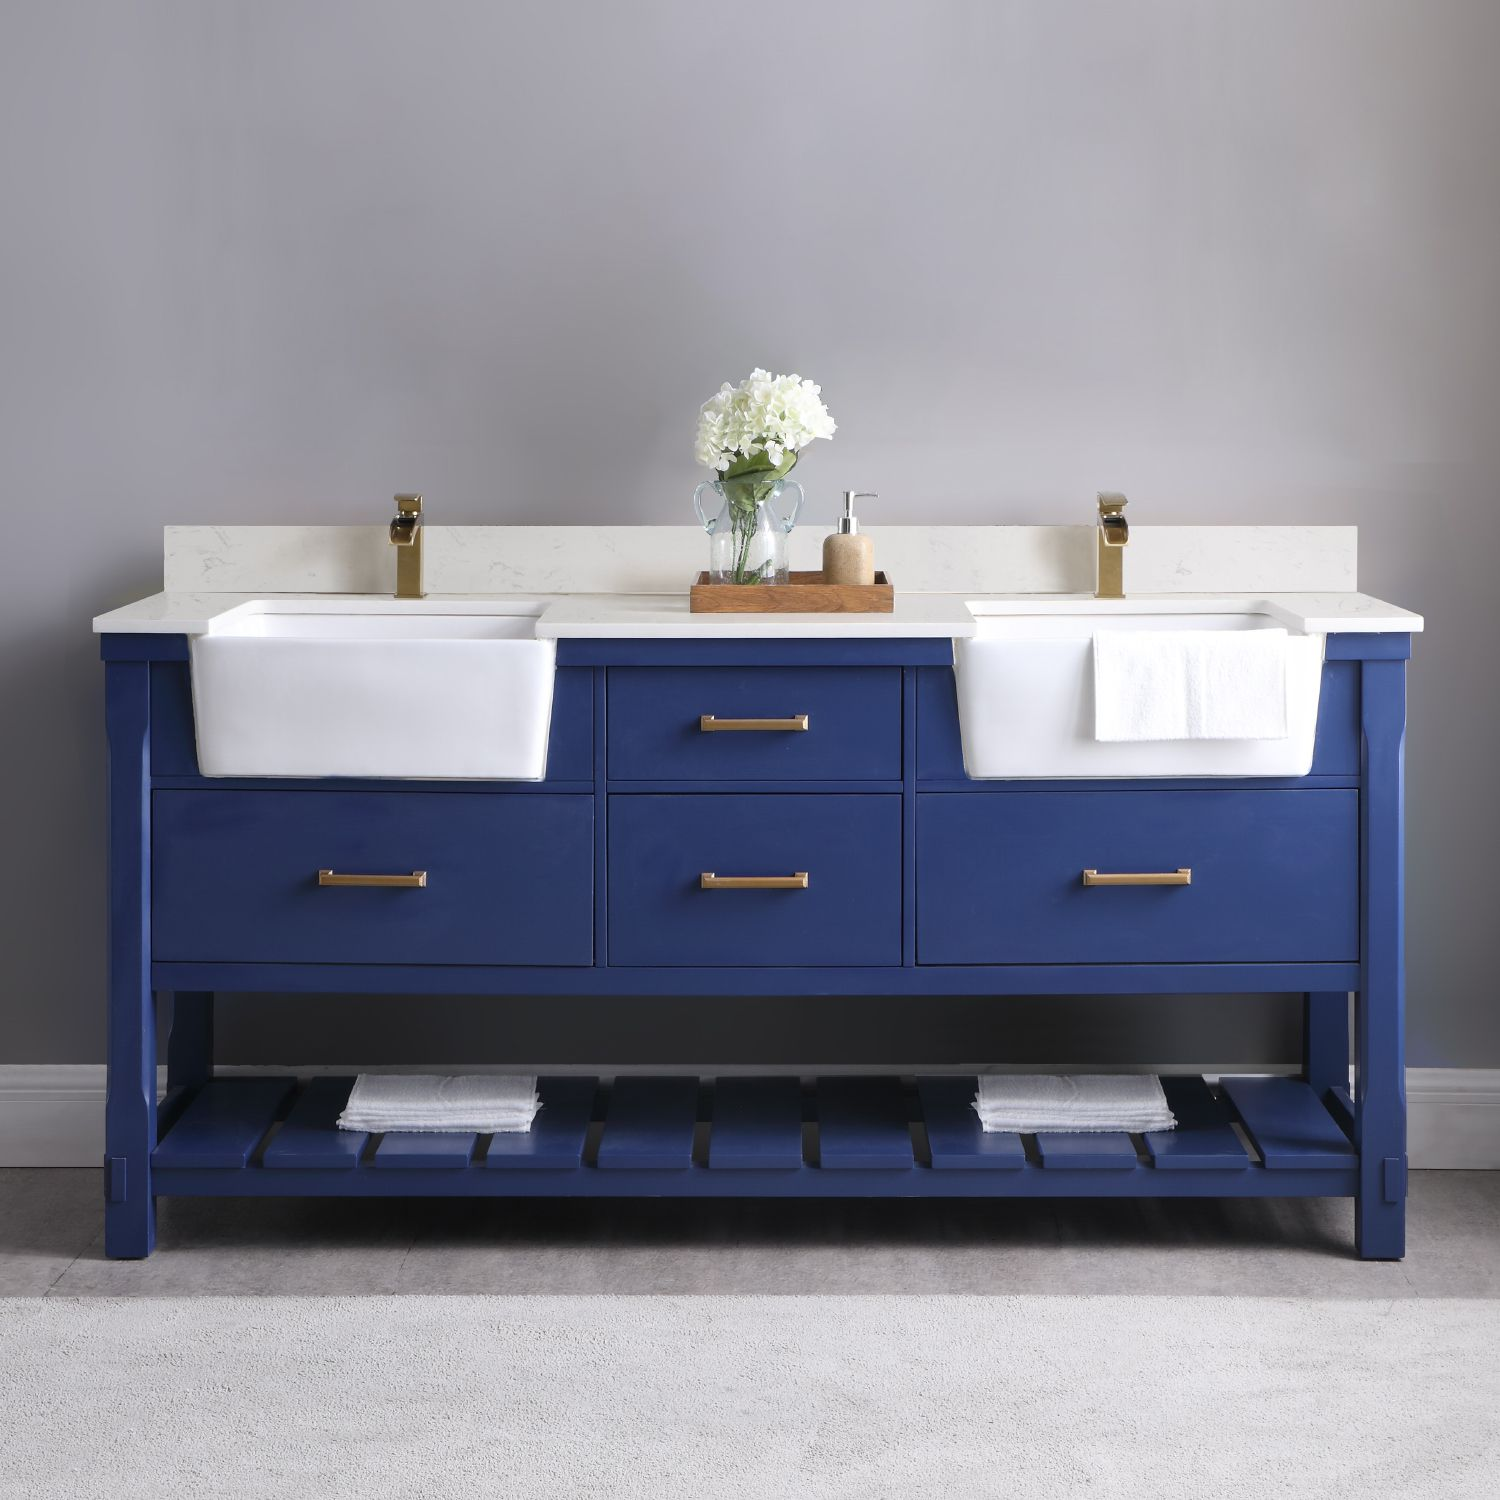 "Issac Edwards Collection 72"" Double Bathroom Vanity Set in Jewelry Blue and Composite Carrara White Stone Top with White Farmhouse Basin without Mirror"